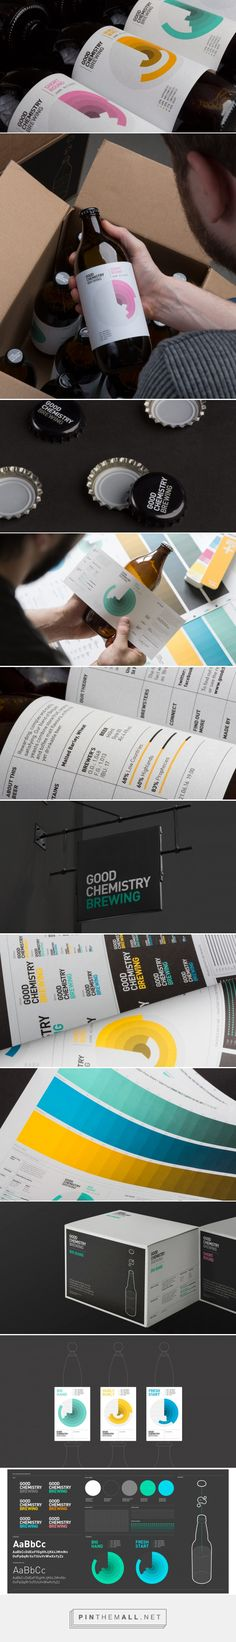 Naming, brand identity and packaging for Good Chemistry brewing by Confederation Studio curated by Packaging Diva PD. Each beer represented by an infographic that would accurately breakdown the specific flavours and peppered with geeky beer related facts accompanied by technical illustrations.